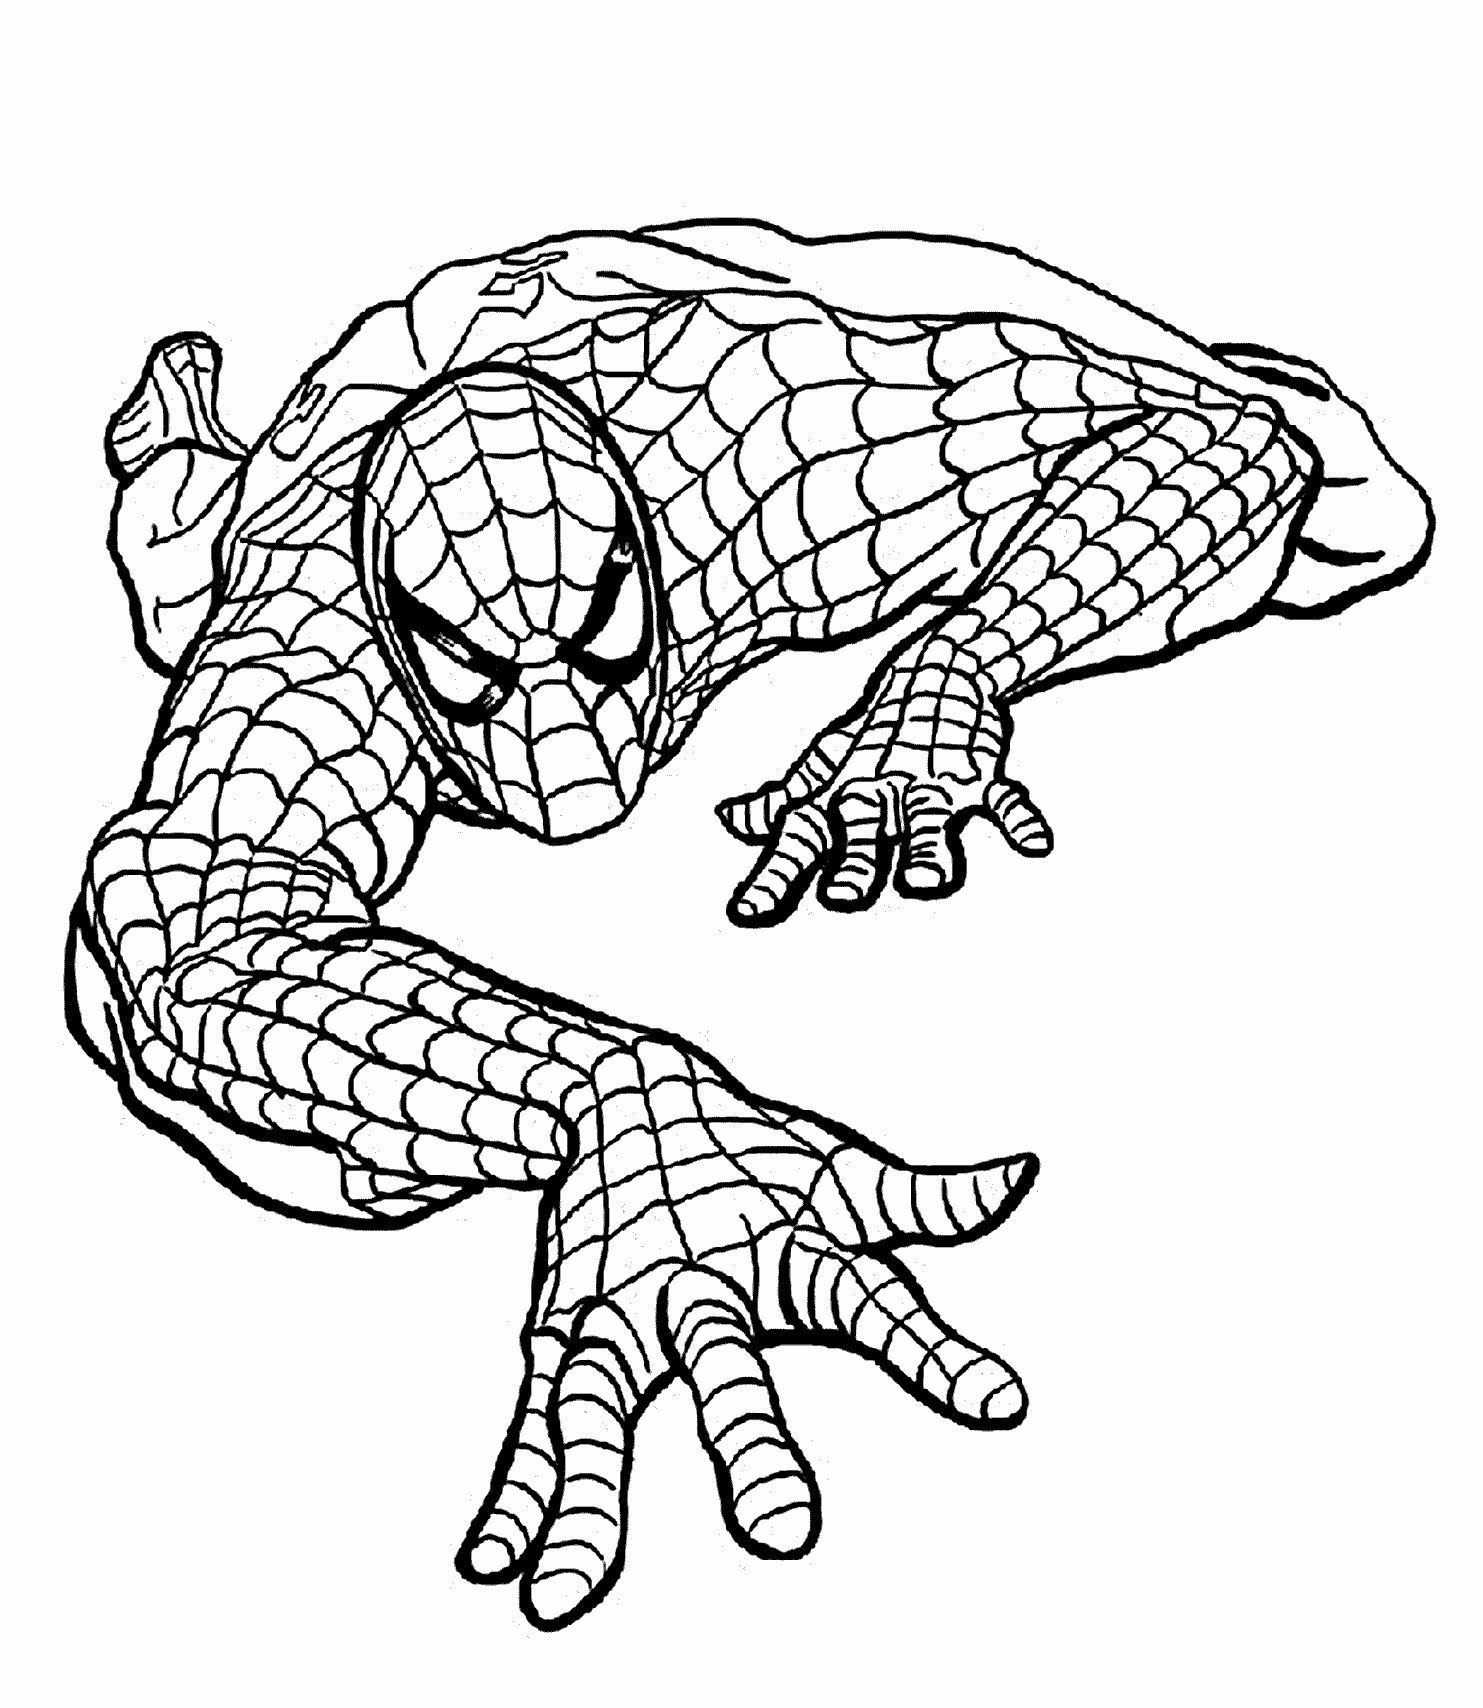 Spiderman Coloring Pages Pdf Cartoon Superhero Coloring Pages Spiderman Coloring Superhero Coloring